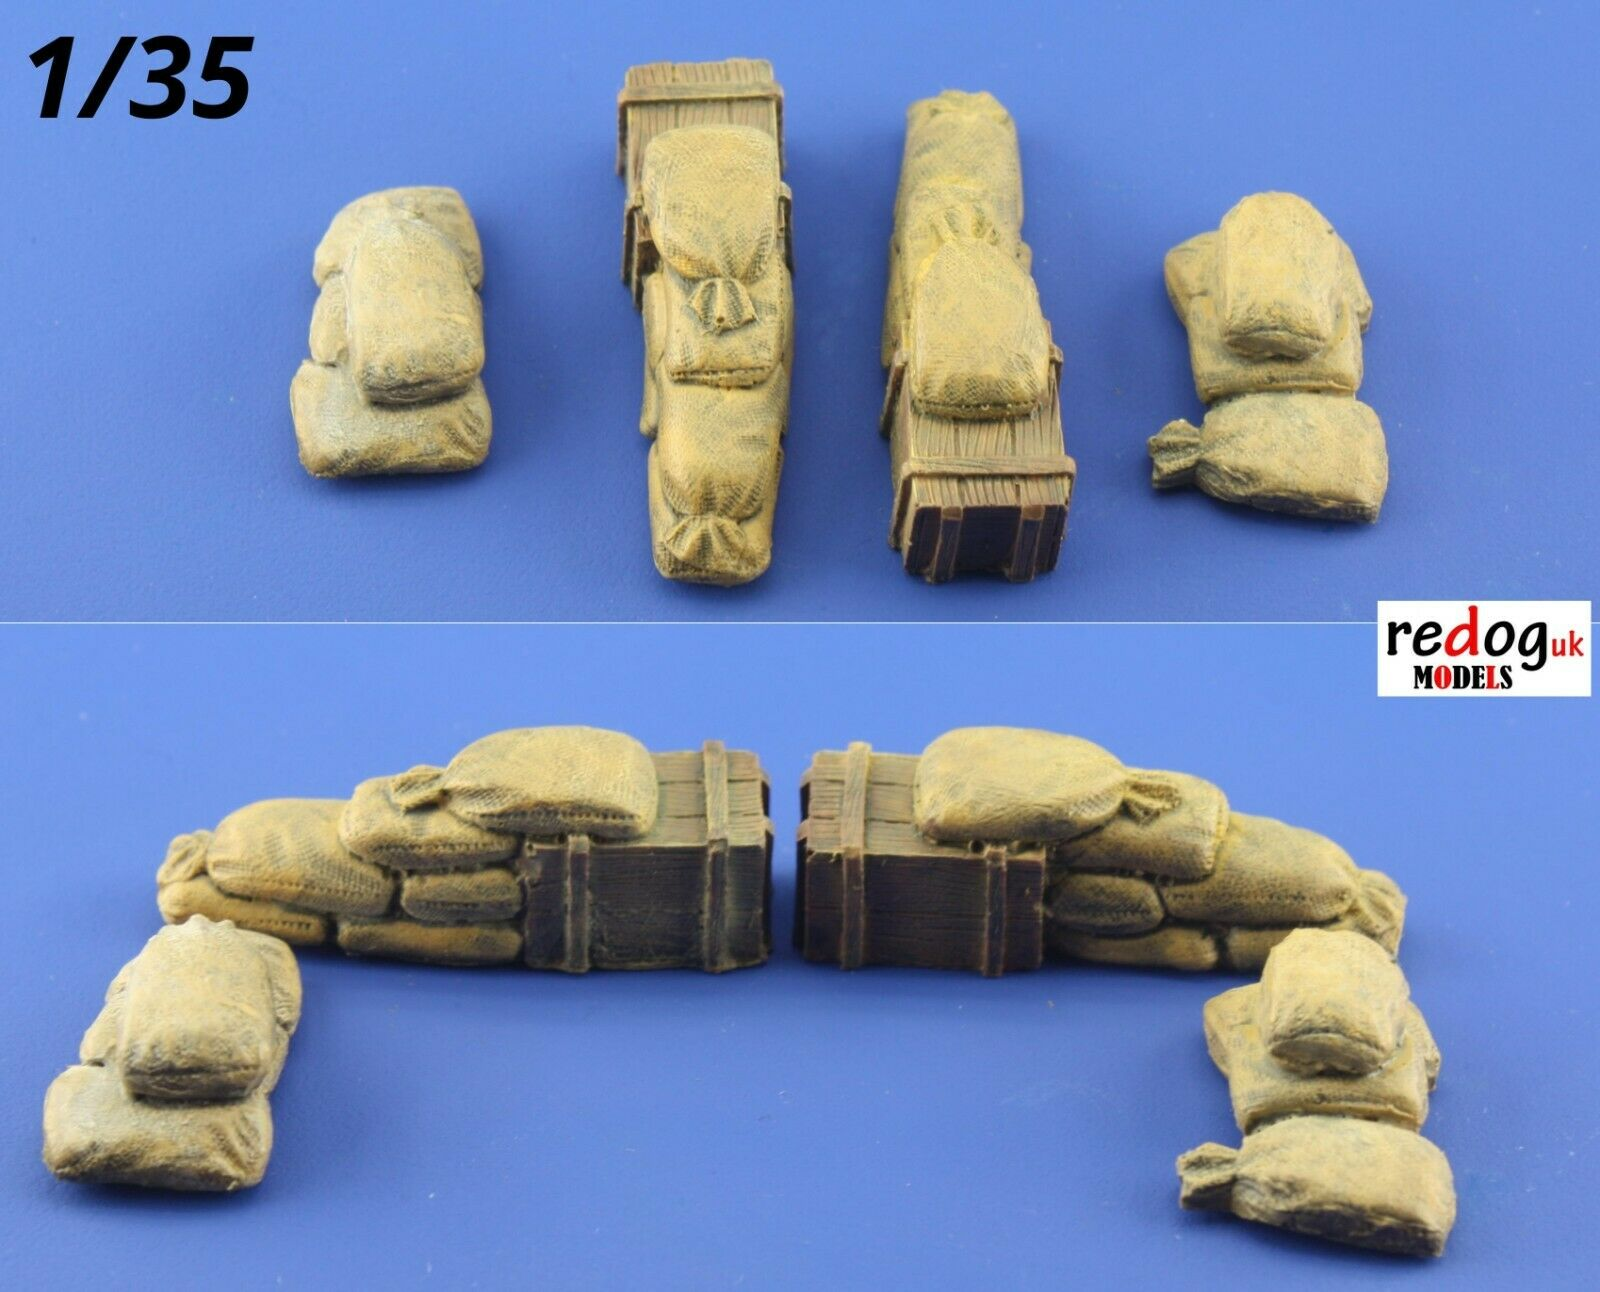 Redog 1/35 Sandbags for Trenches / Resin Scale Model Diorama Kit /3515 - redoguk